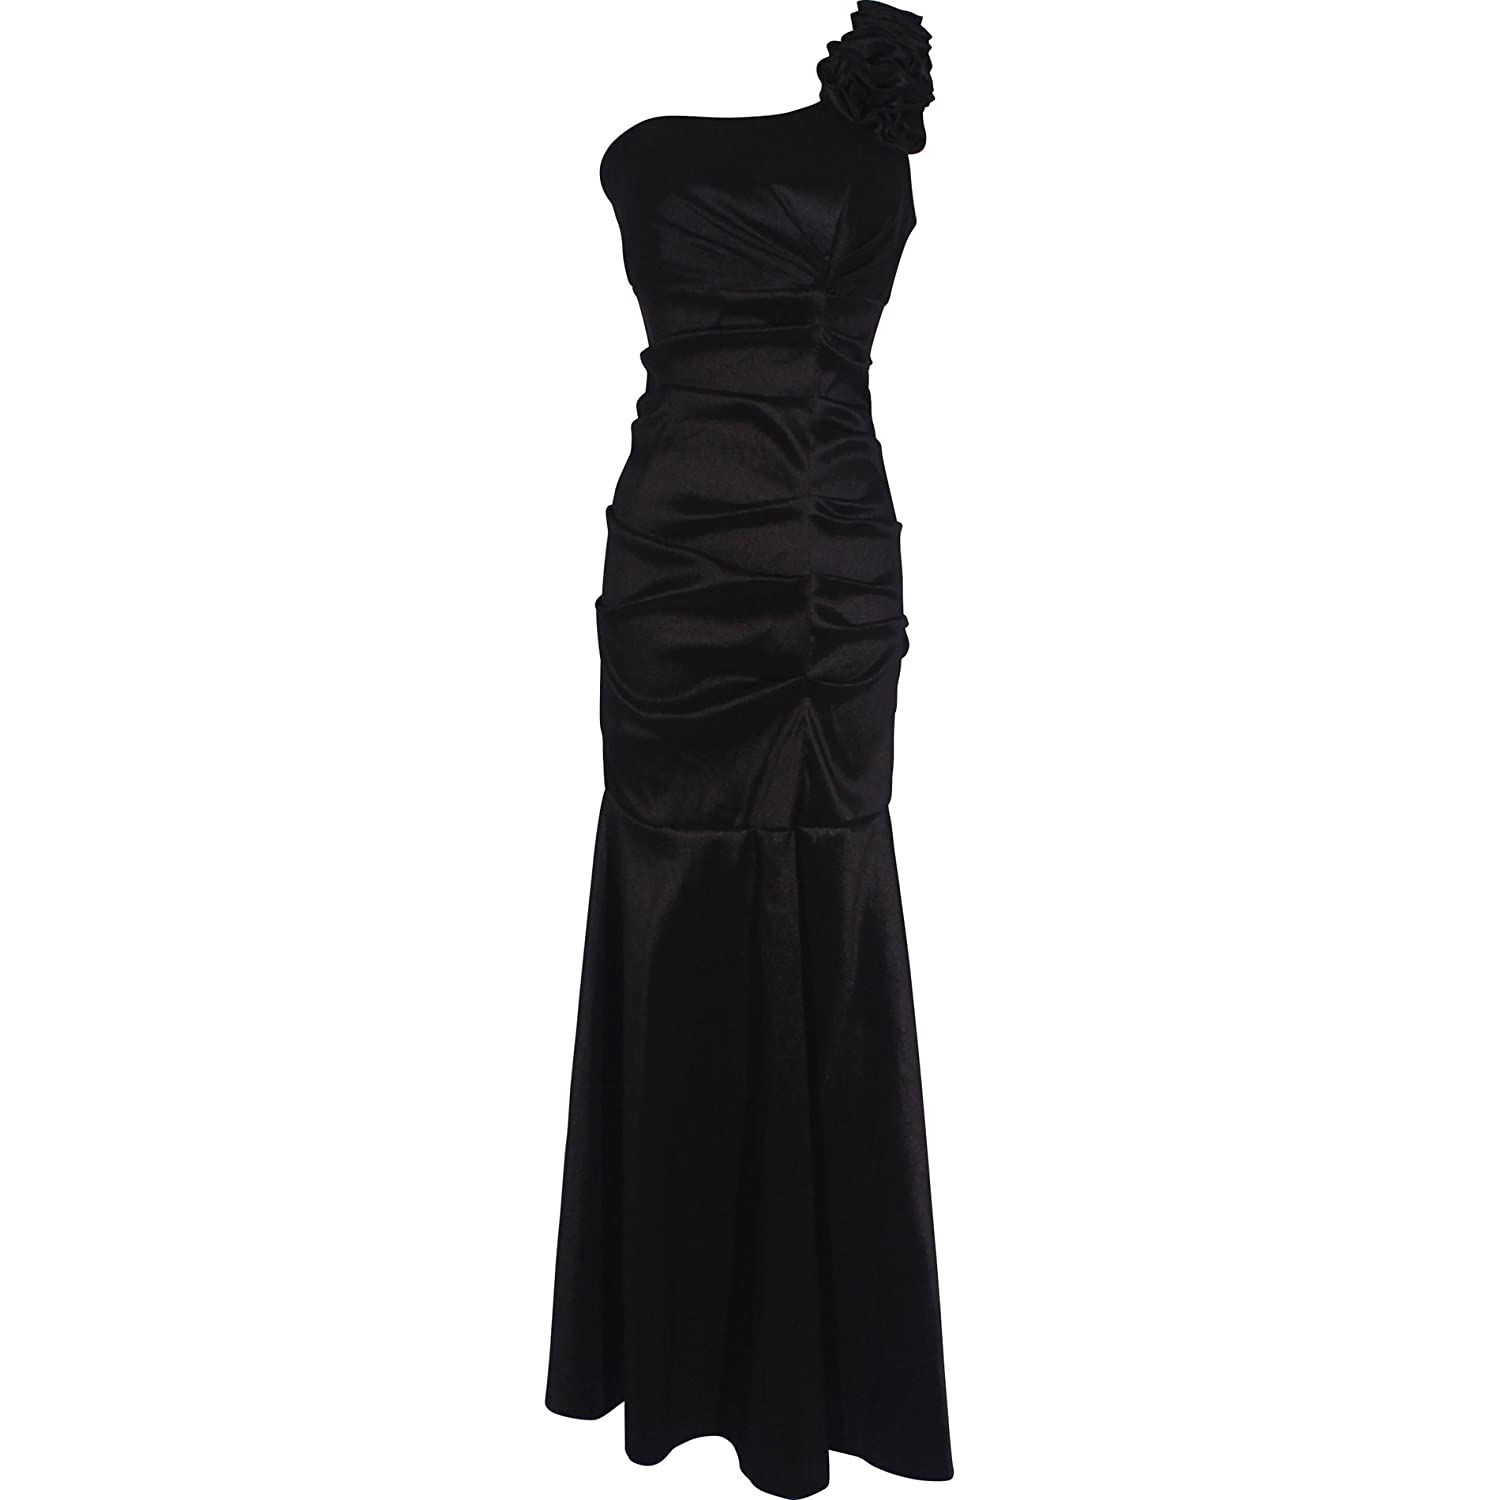 One-Shoulder Trumpet Taffeta Long Prom Dress Bridesmaid Gown at Amazon Womens Clothing store: Prom Dresses For Juniors